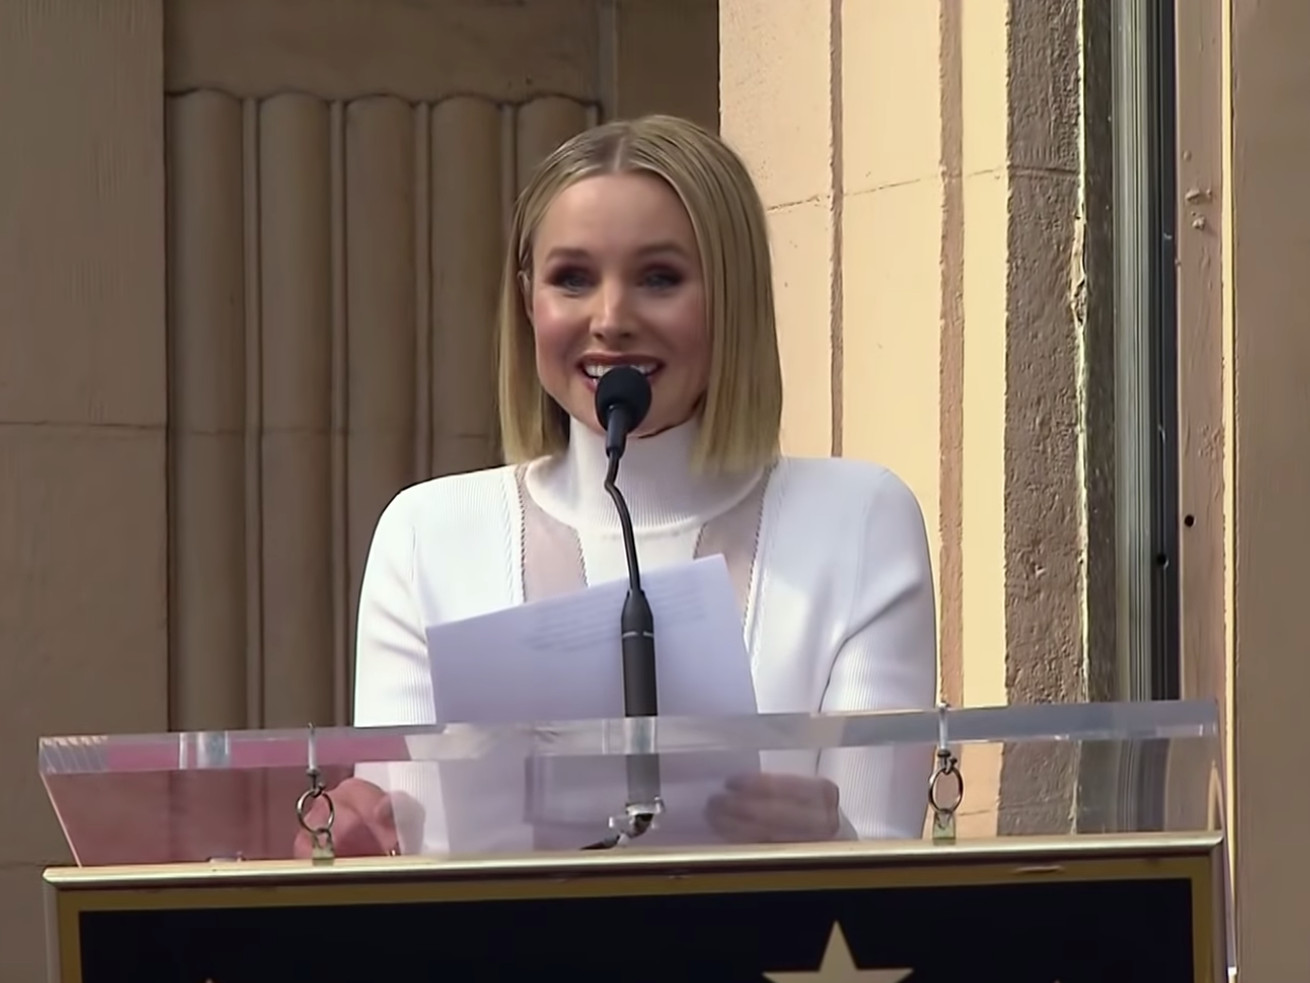 Kristen Bell Got Her Own Hollywood Star And Her Speech Was Amazing